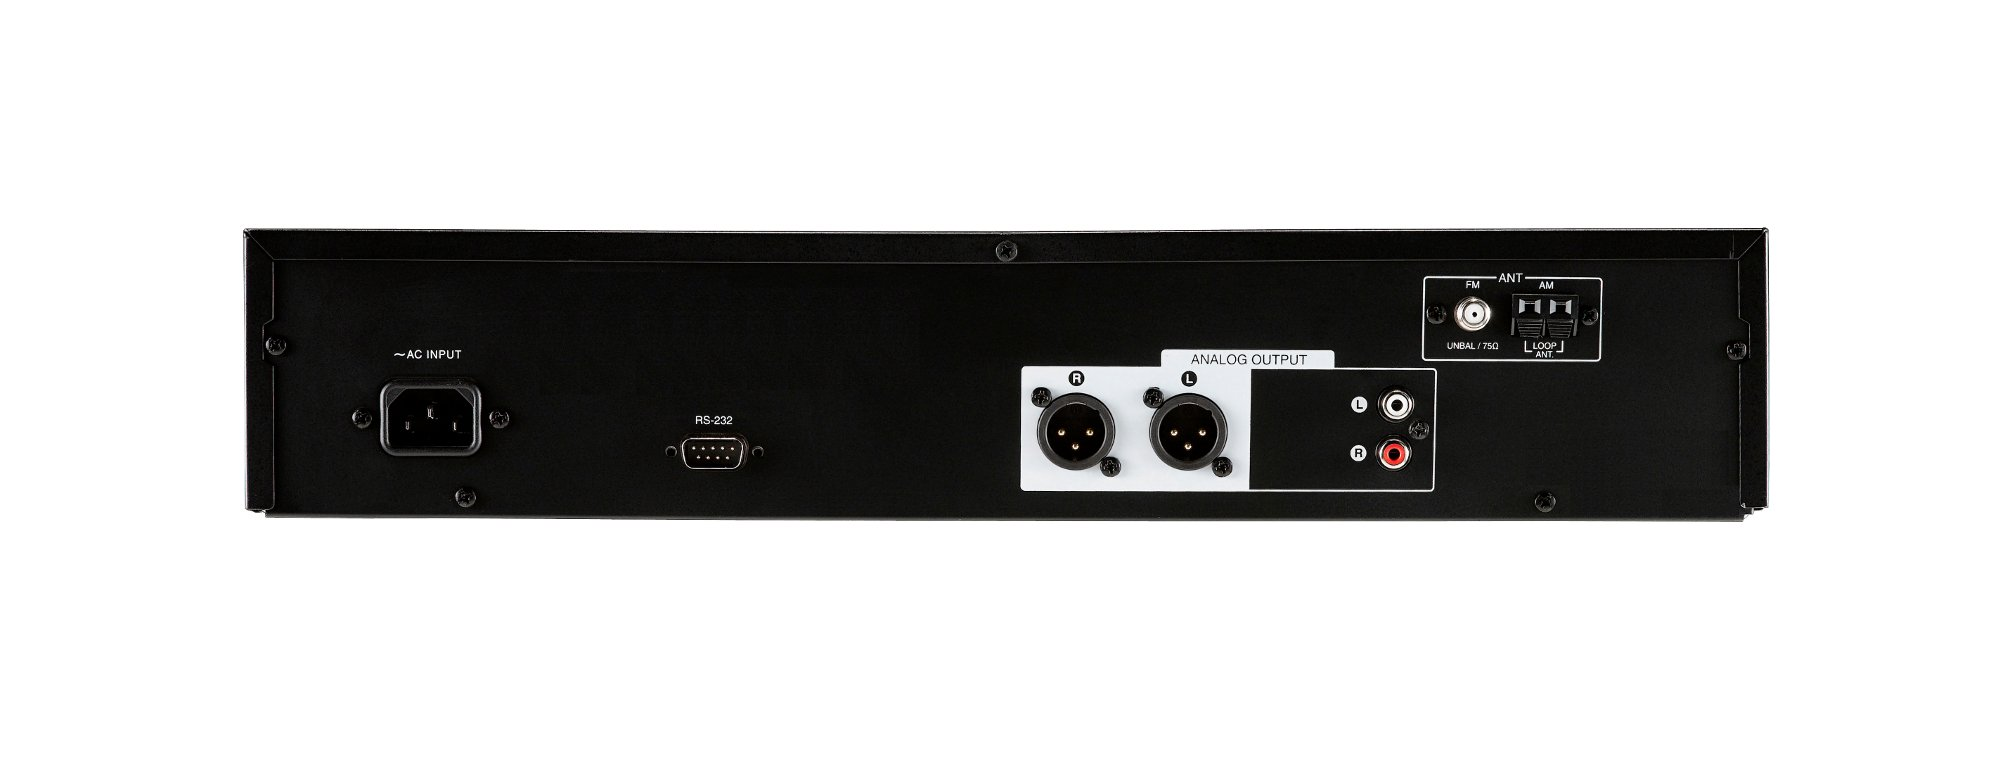 FM/AM Tuner with 40 Station Memories, RS-232 Protocol